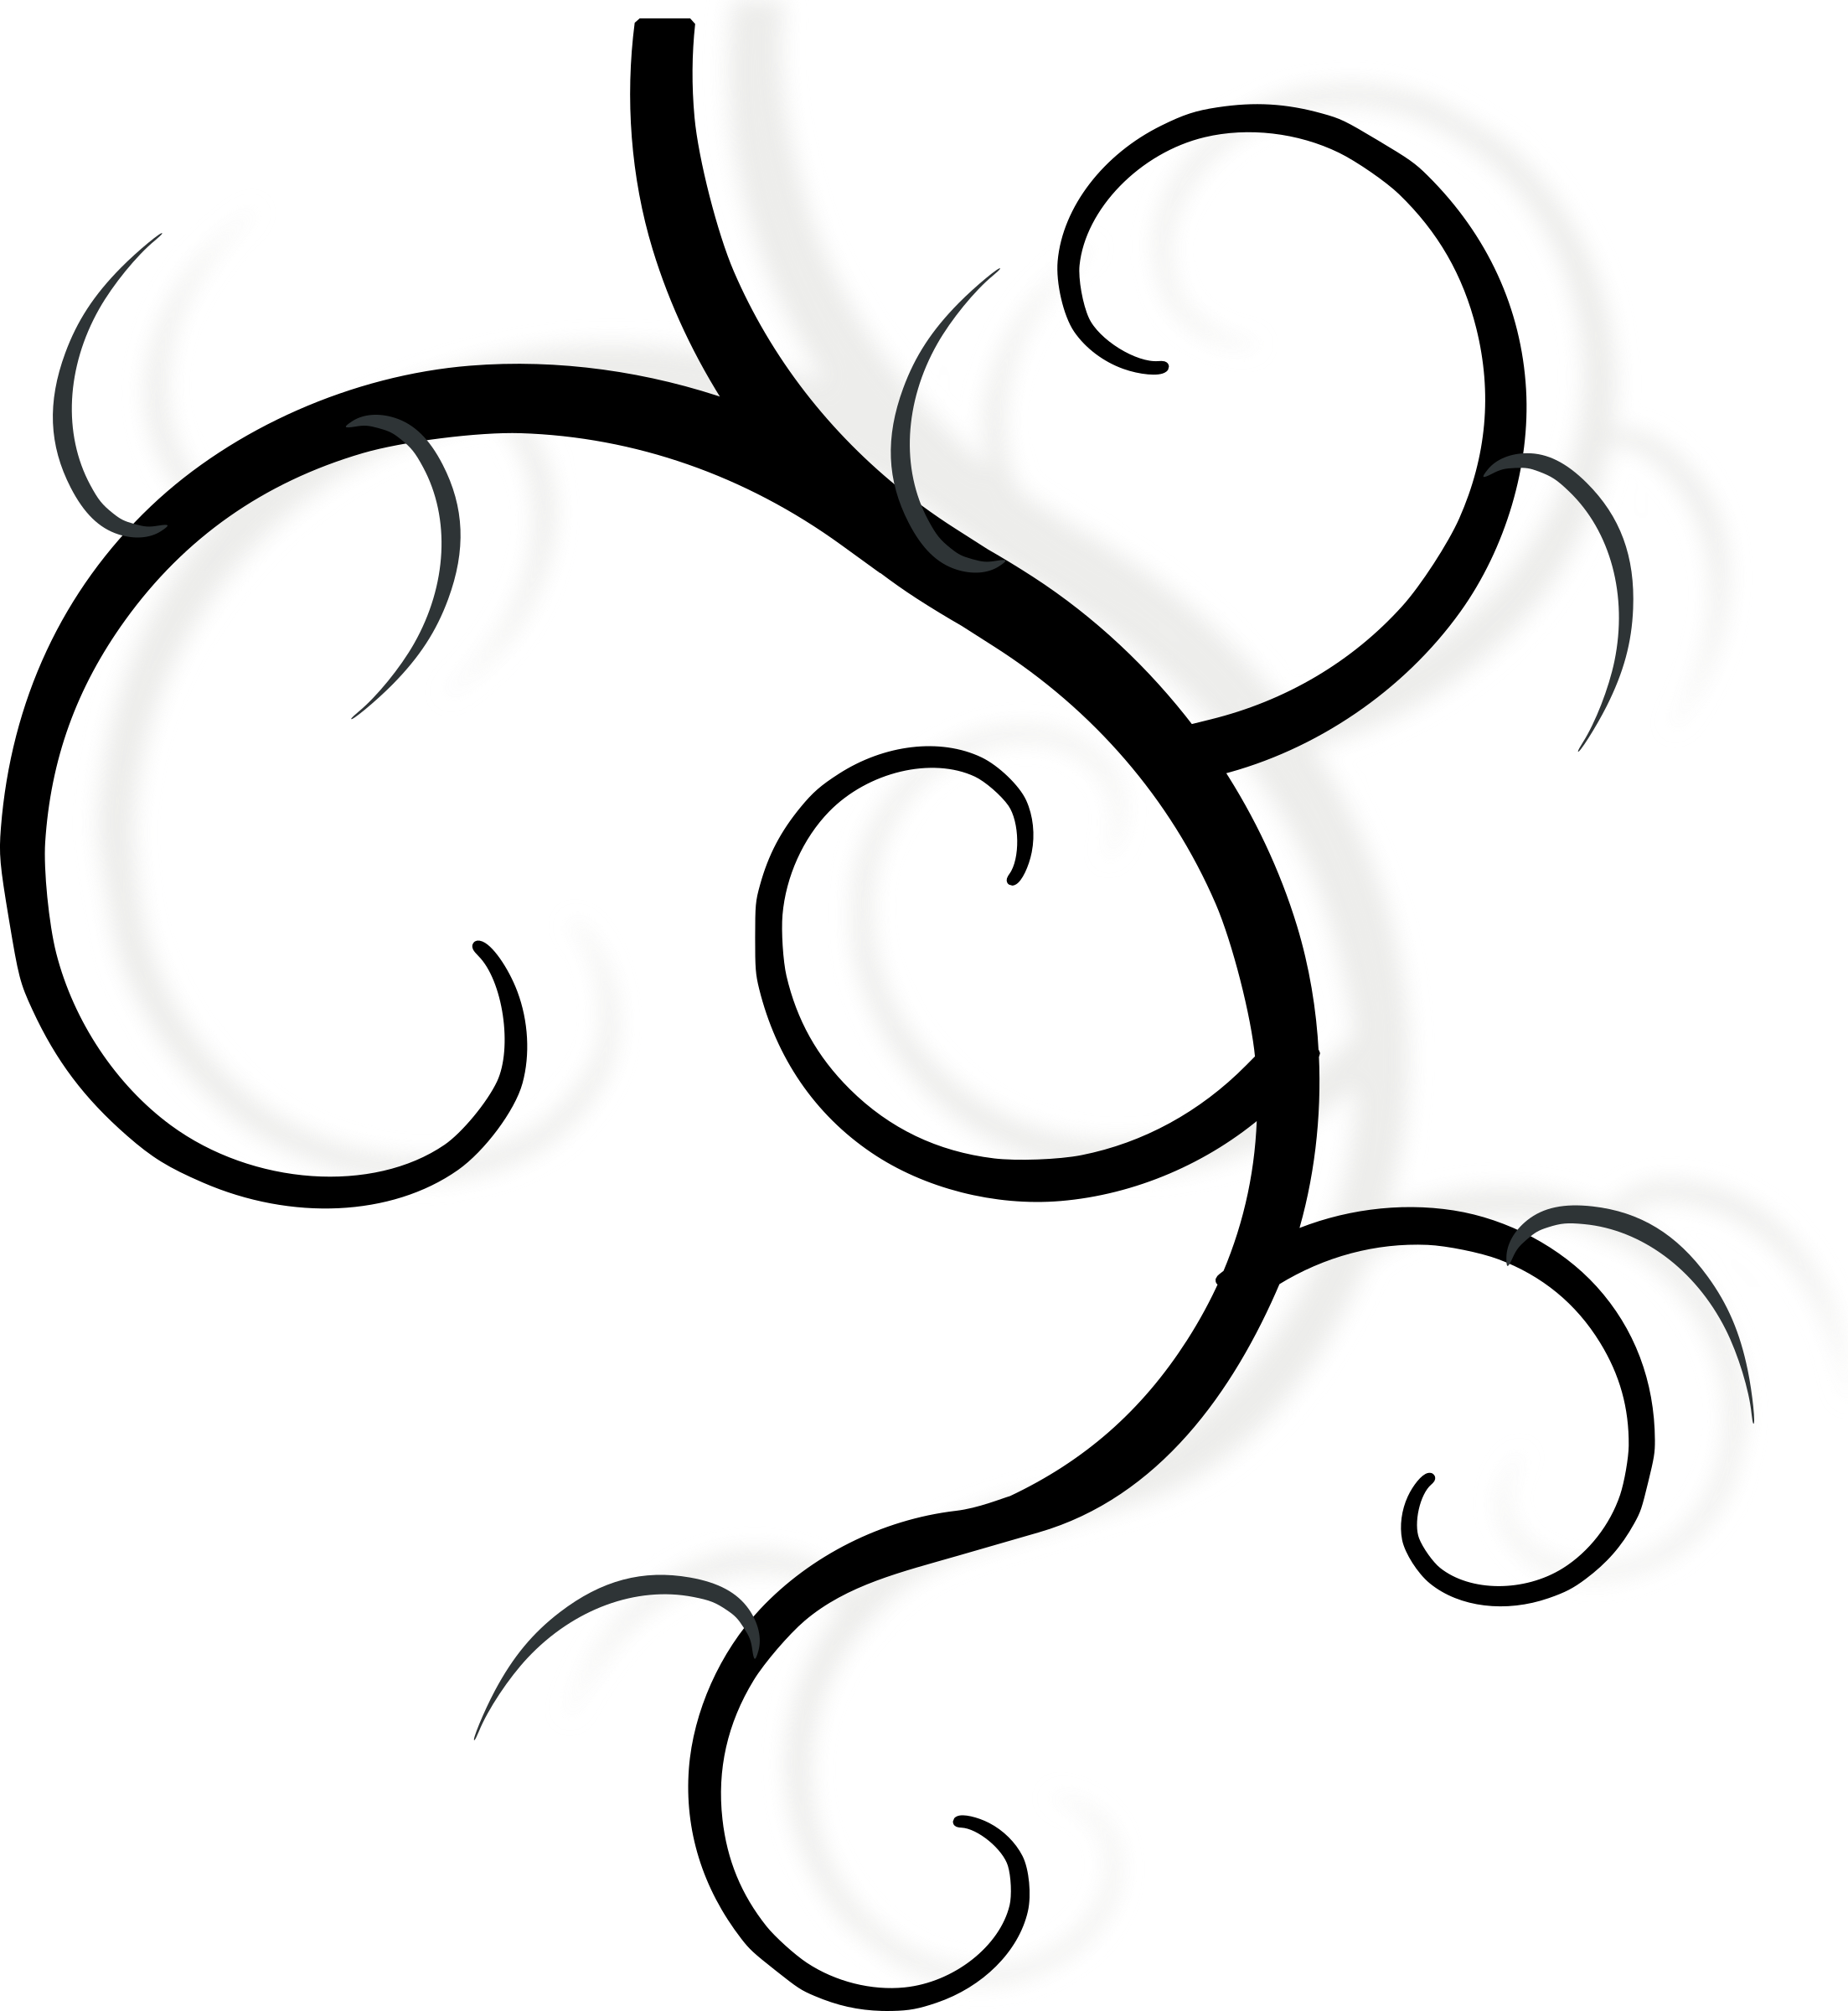 vector library stock Swirl drawing. Clipart design element big